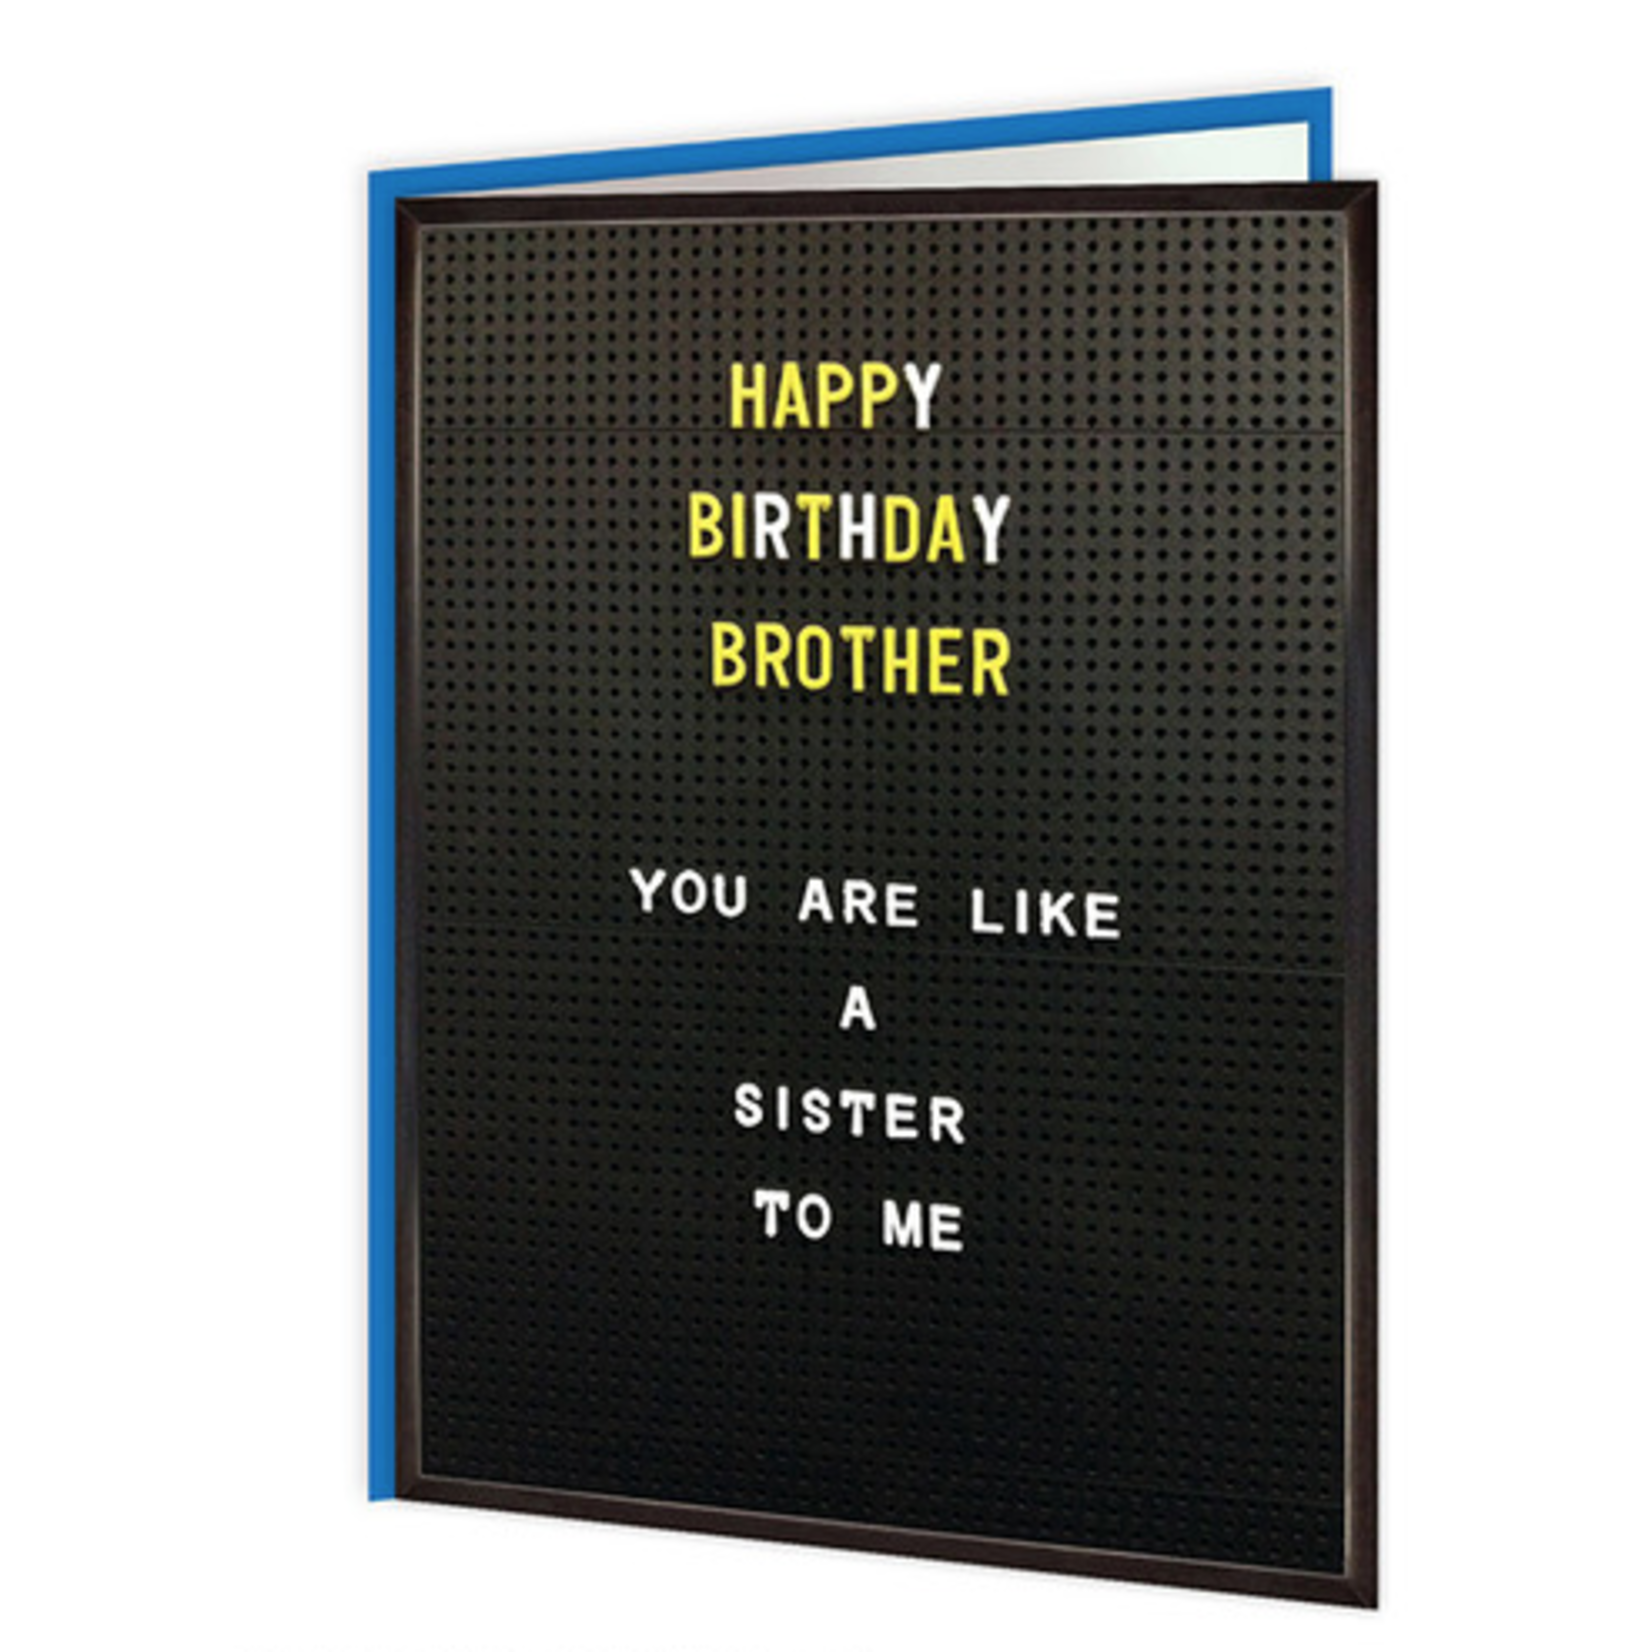 Brainbox Candy brother like sister funny birthday card